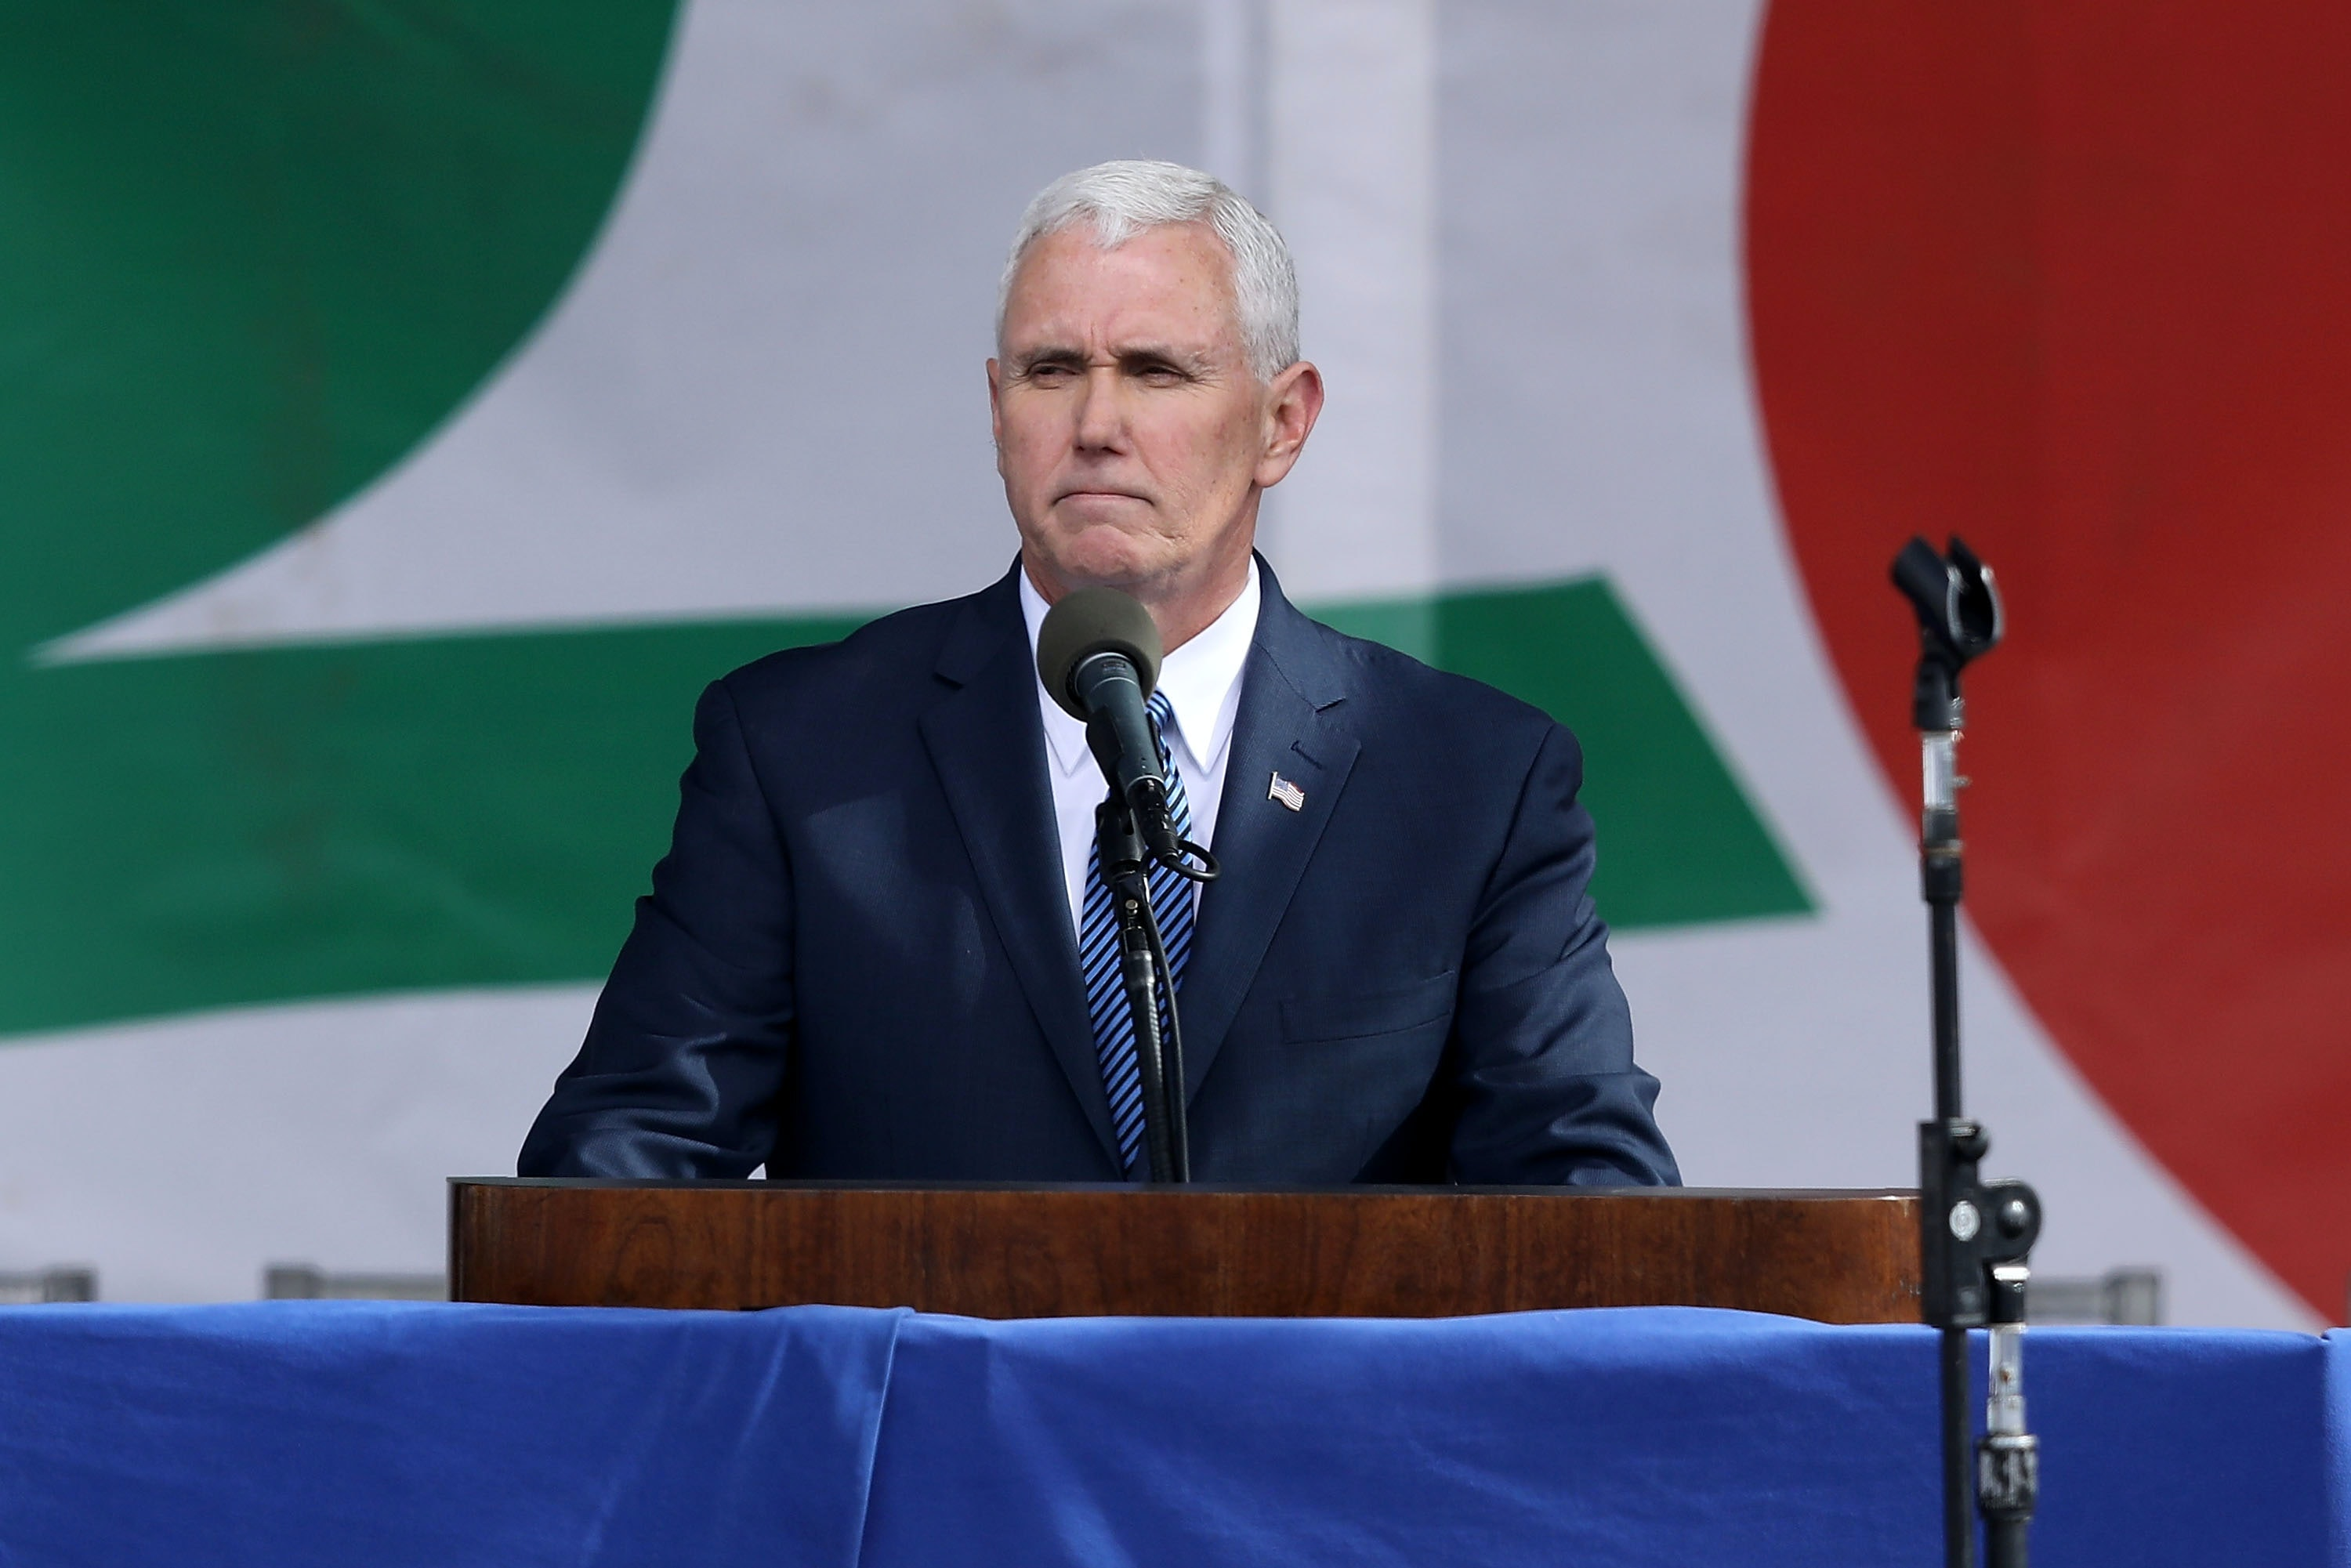 Pence Says Federal Judge 'Certainly' Has Authority To Halt Immigration Order